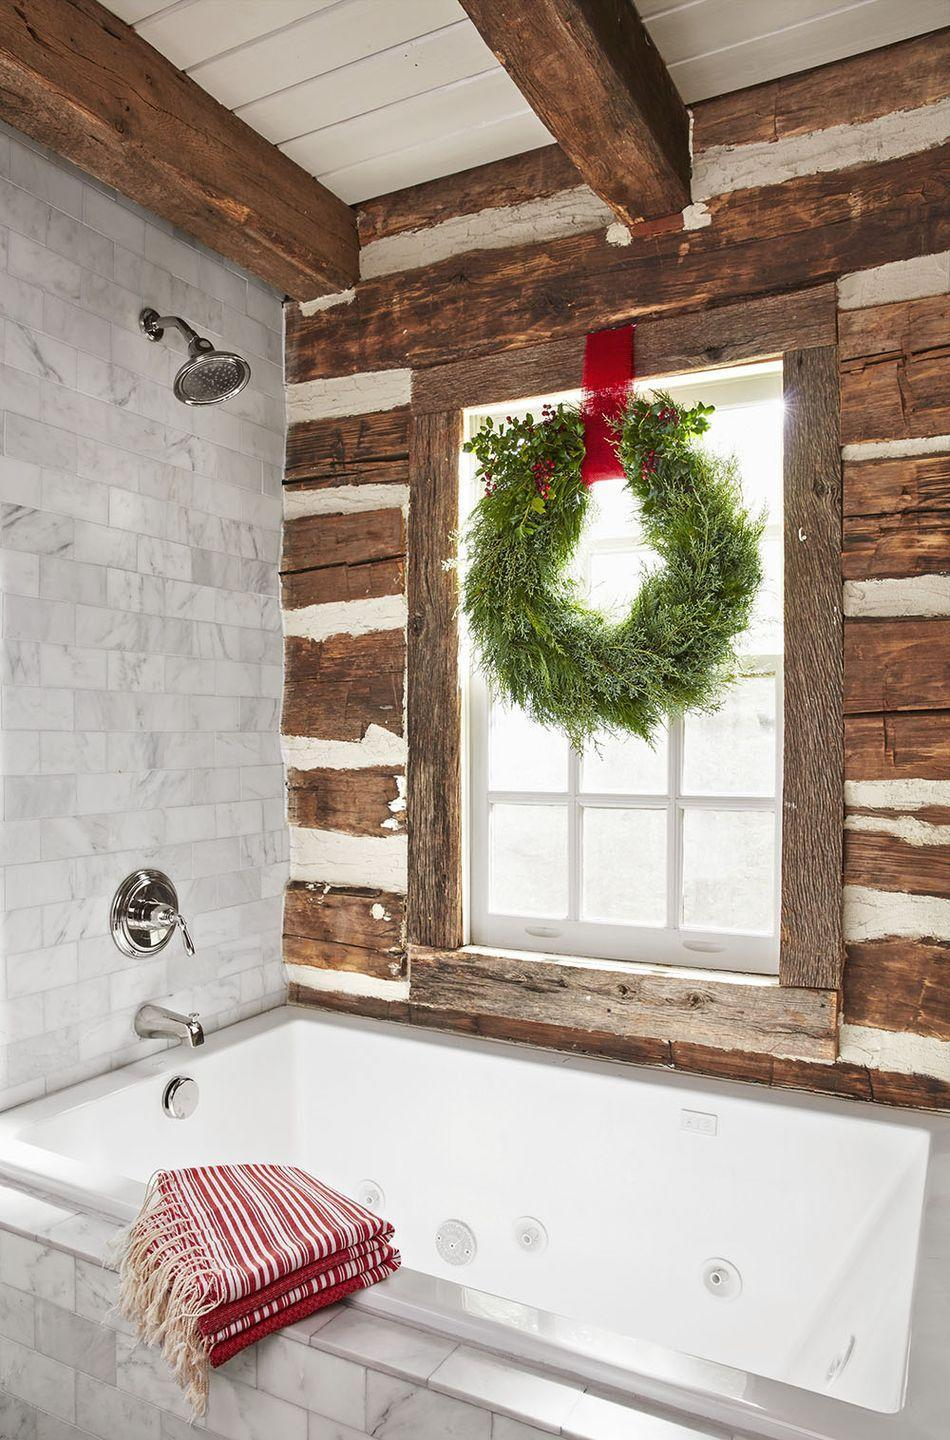 """<p>Make sure your windows in every room are covered—yes, we mean every room! A wreath in your bathroom will add a seasonal touch to the space.</p><p><a class=""""link rapid-noclick-resp"""" href=""""https://www.amazon.com/ITIsparkle-Solid-Double-Ribbon-Yards-Roll/dp/B07MN9YN7Y/?tag=syn-yahoo-20&ascsubtag=%5Bartid%7C10050.g.23343056%5Bsrc%7Cyahoo-us"""" rel=""""nofollow noopener"""" target=""""_blank"""" data-ylk=""""slk:SHOP RED RIBBON"""">SHOP RED RIBBON</a></p>"""